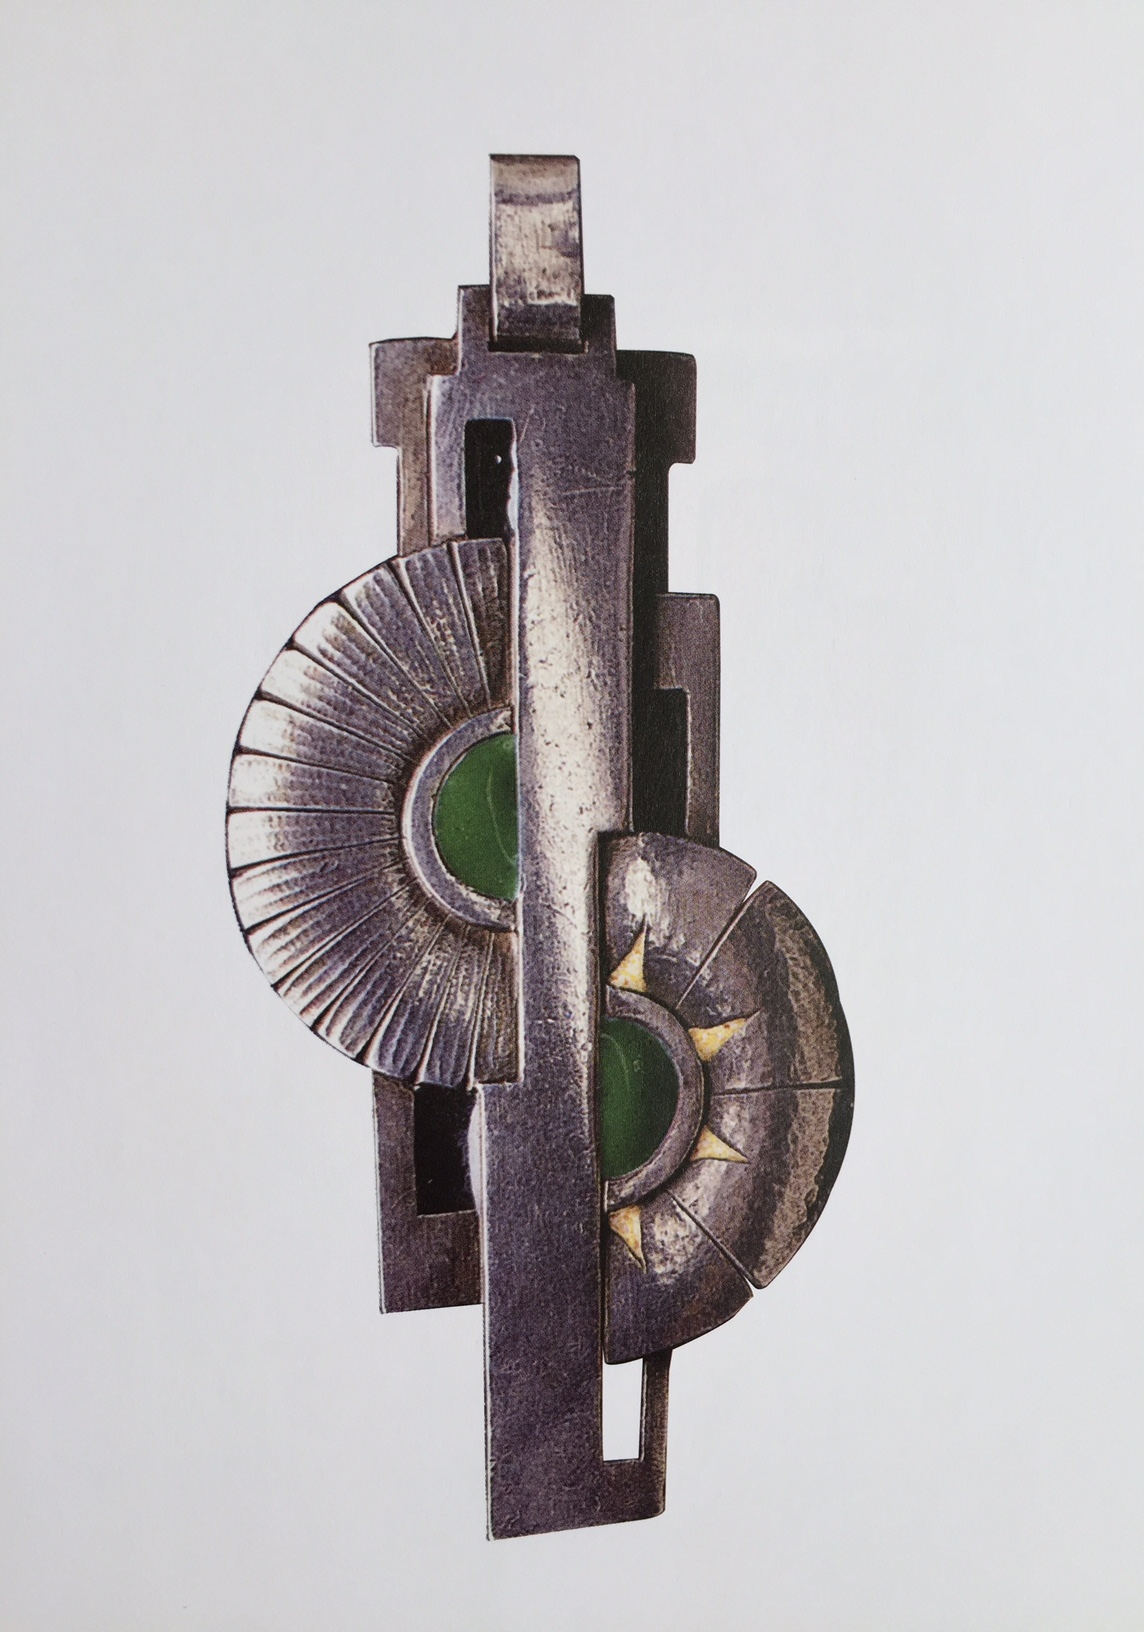 E. David, Pendant, silver and enamels, 1920